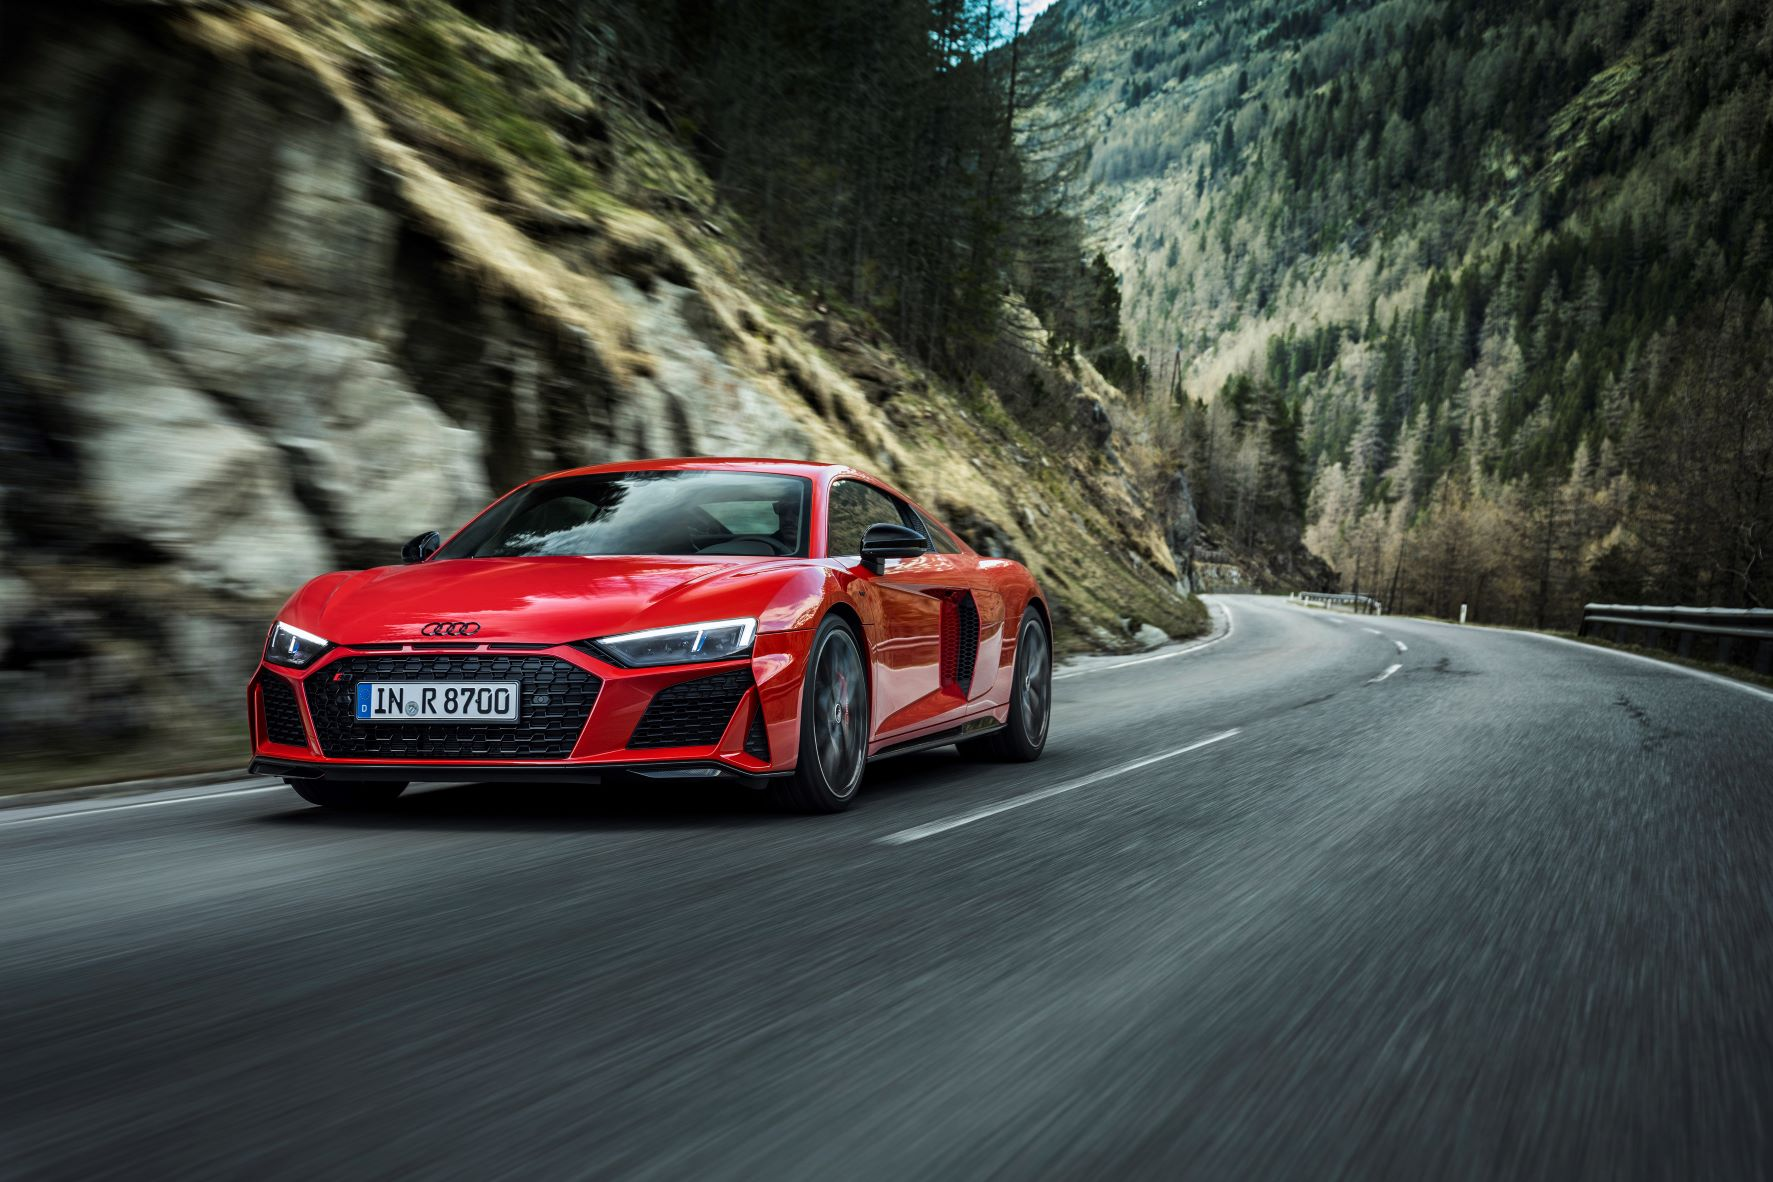 Audi R8 V10 Performance RWD Coupe on country roads